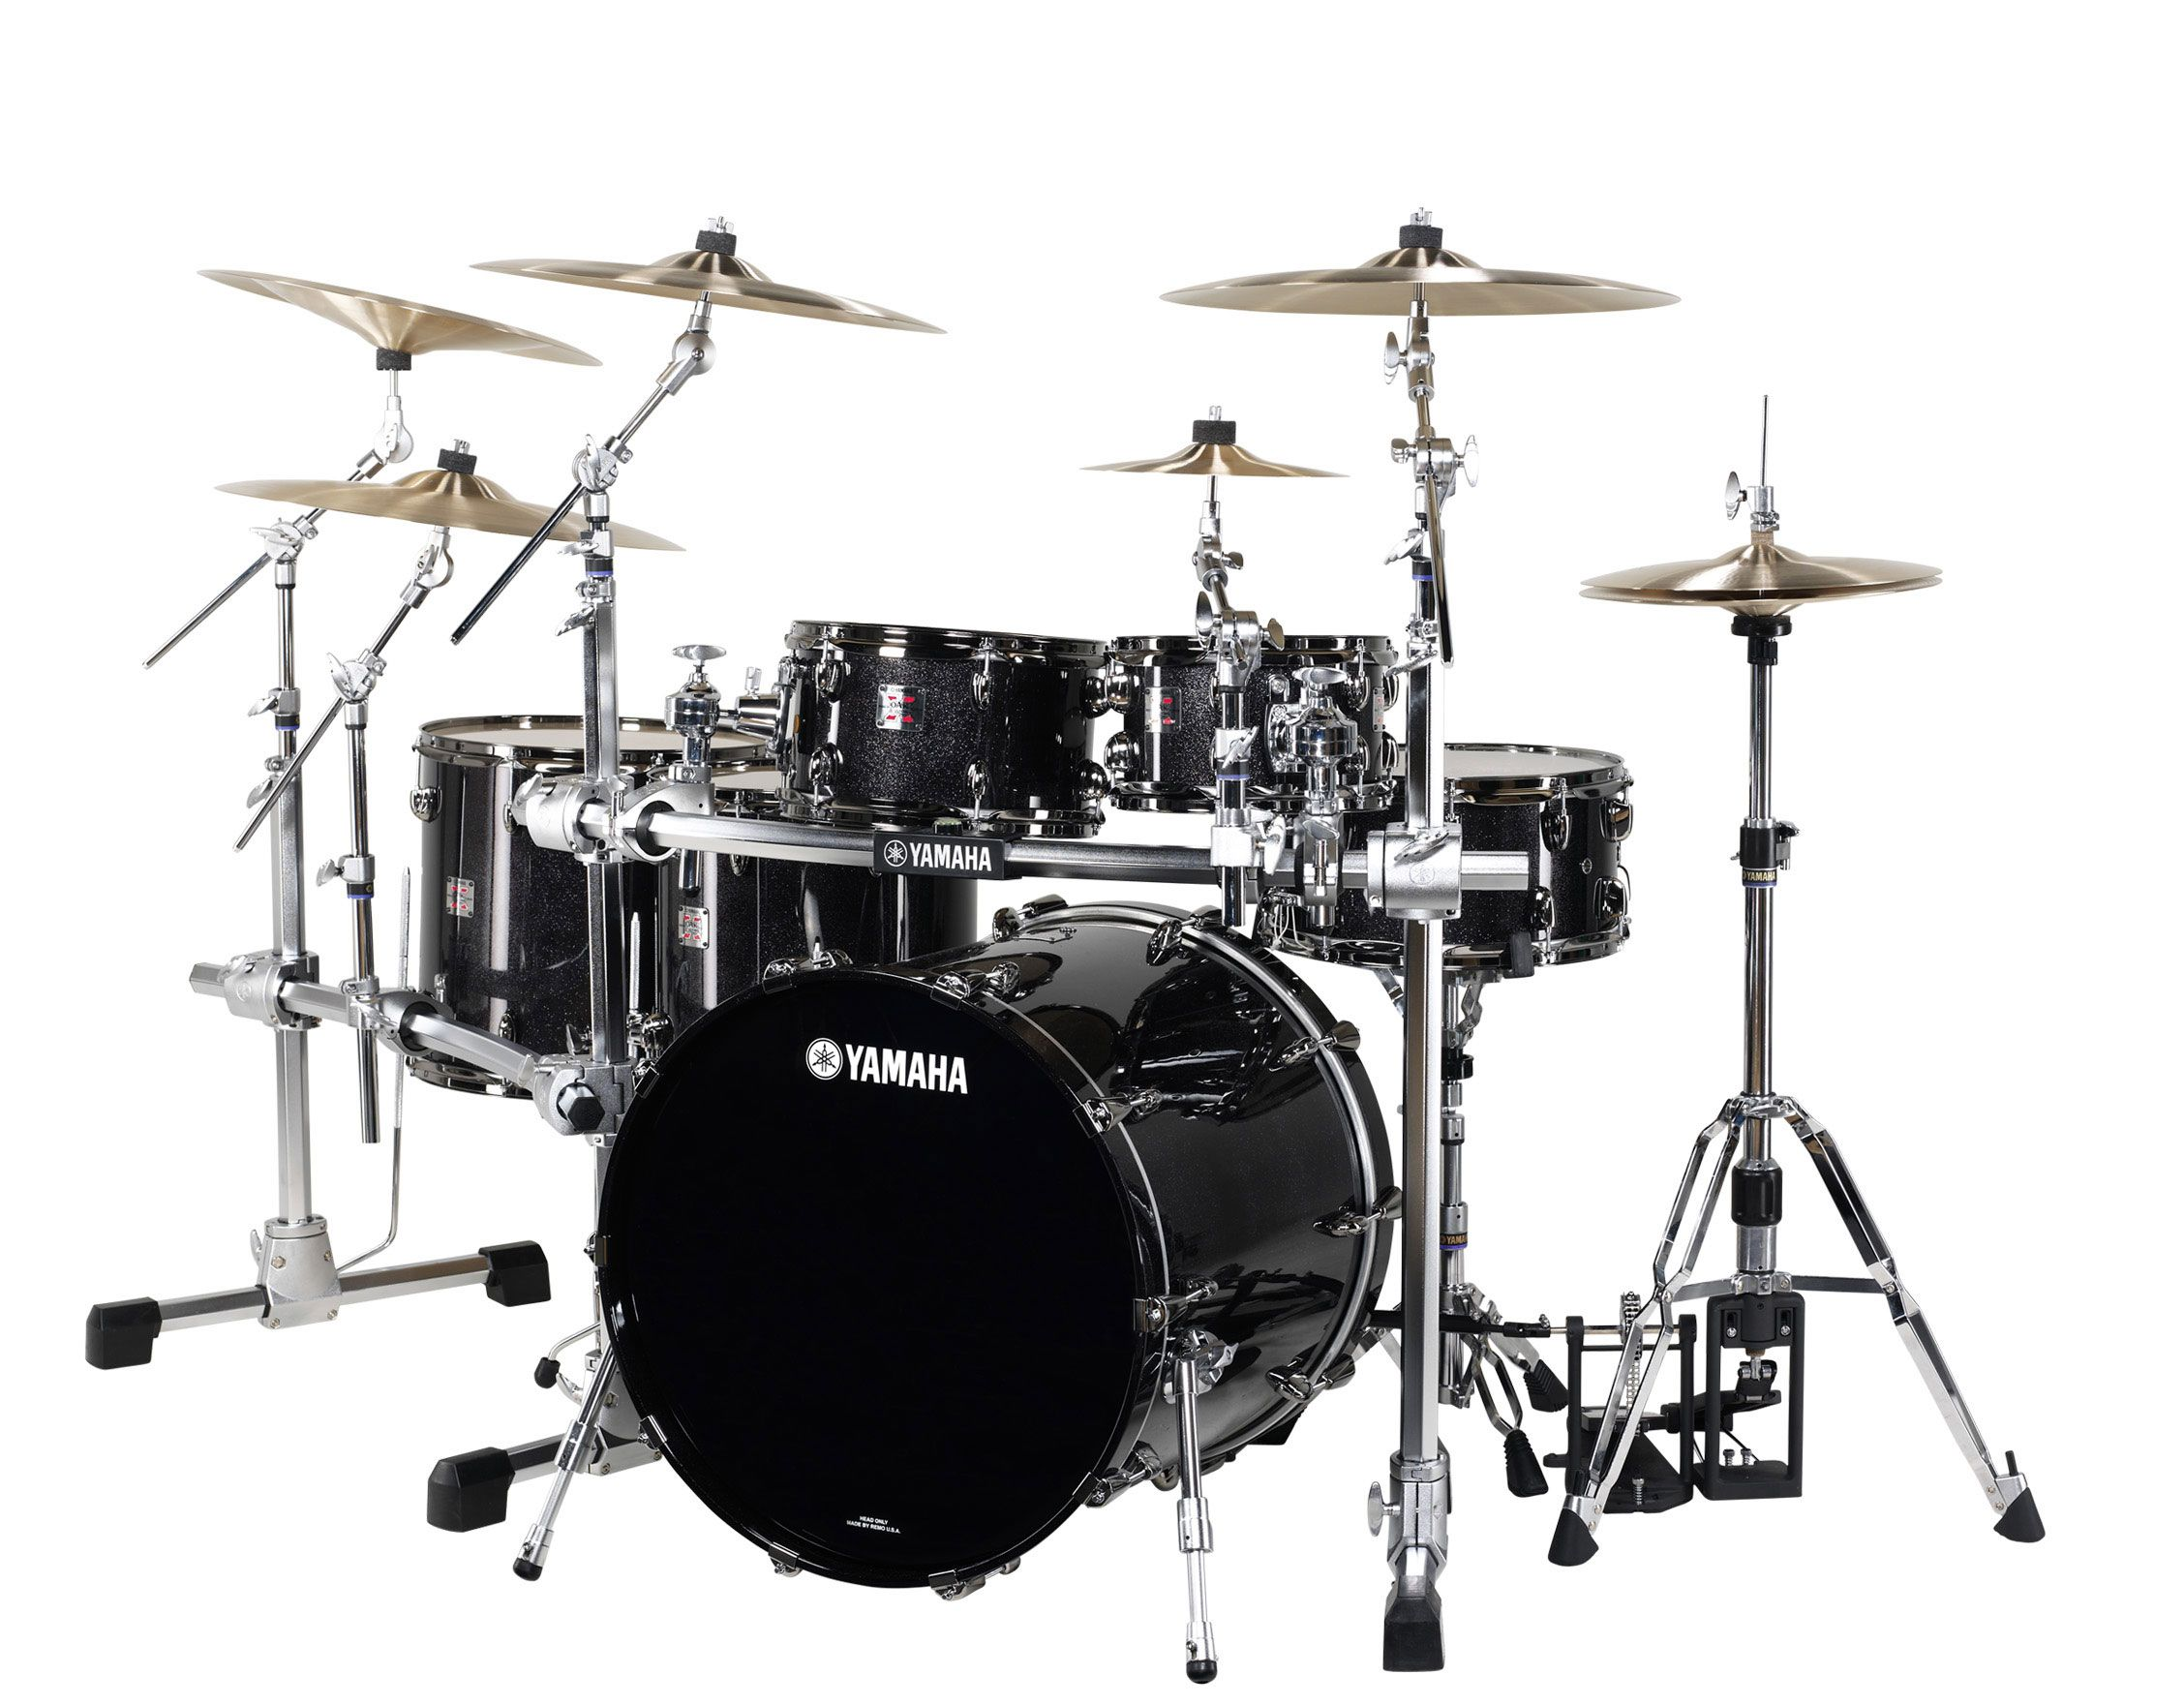 Cheapest Acoustic Drum Set : the 25 best acoustic drum ideas on pinterest acoustic drum set cheap wall tiles and how to ~ Vivirlamusica.com Haus und Dekorationen